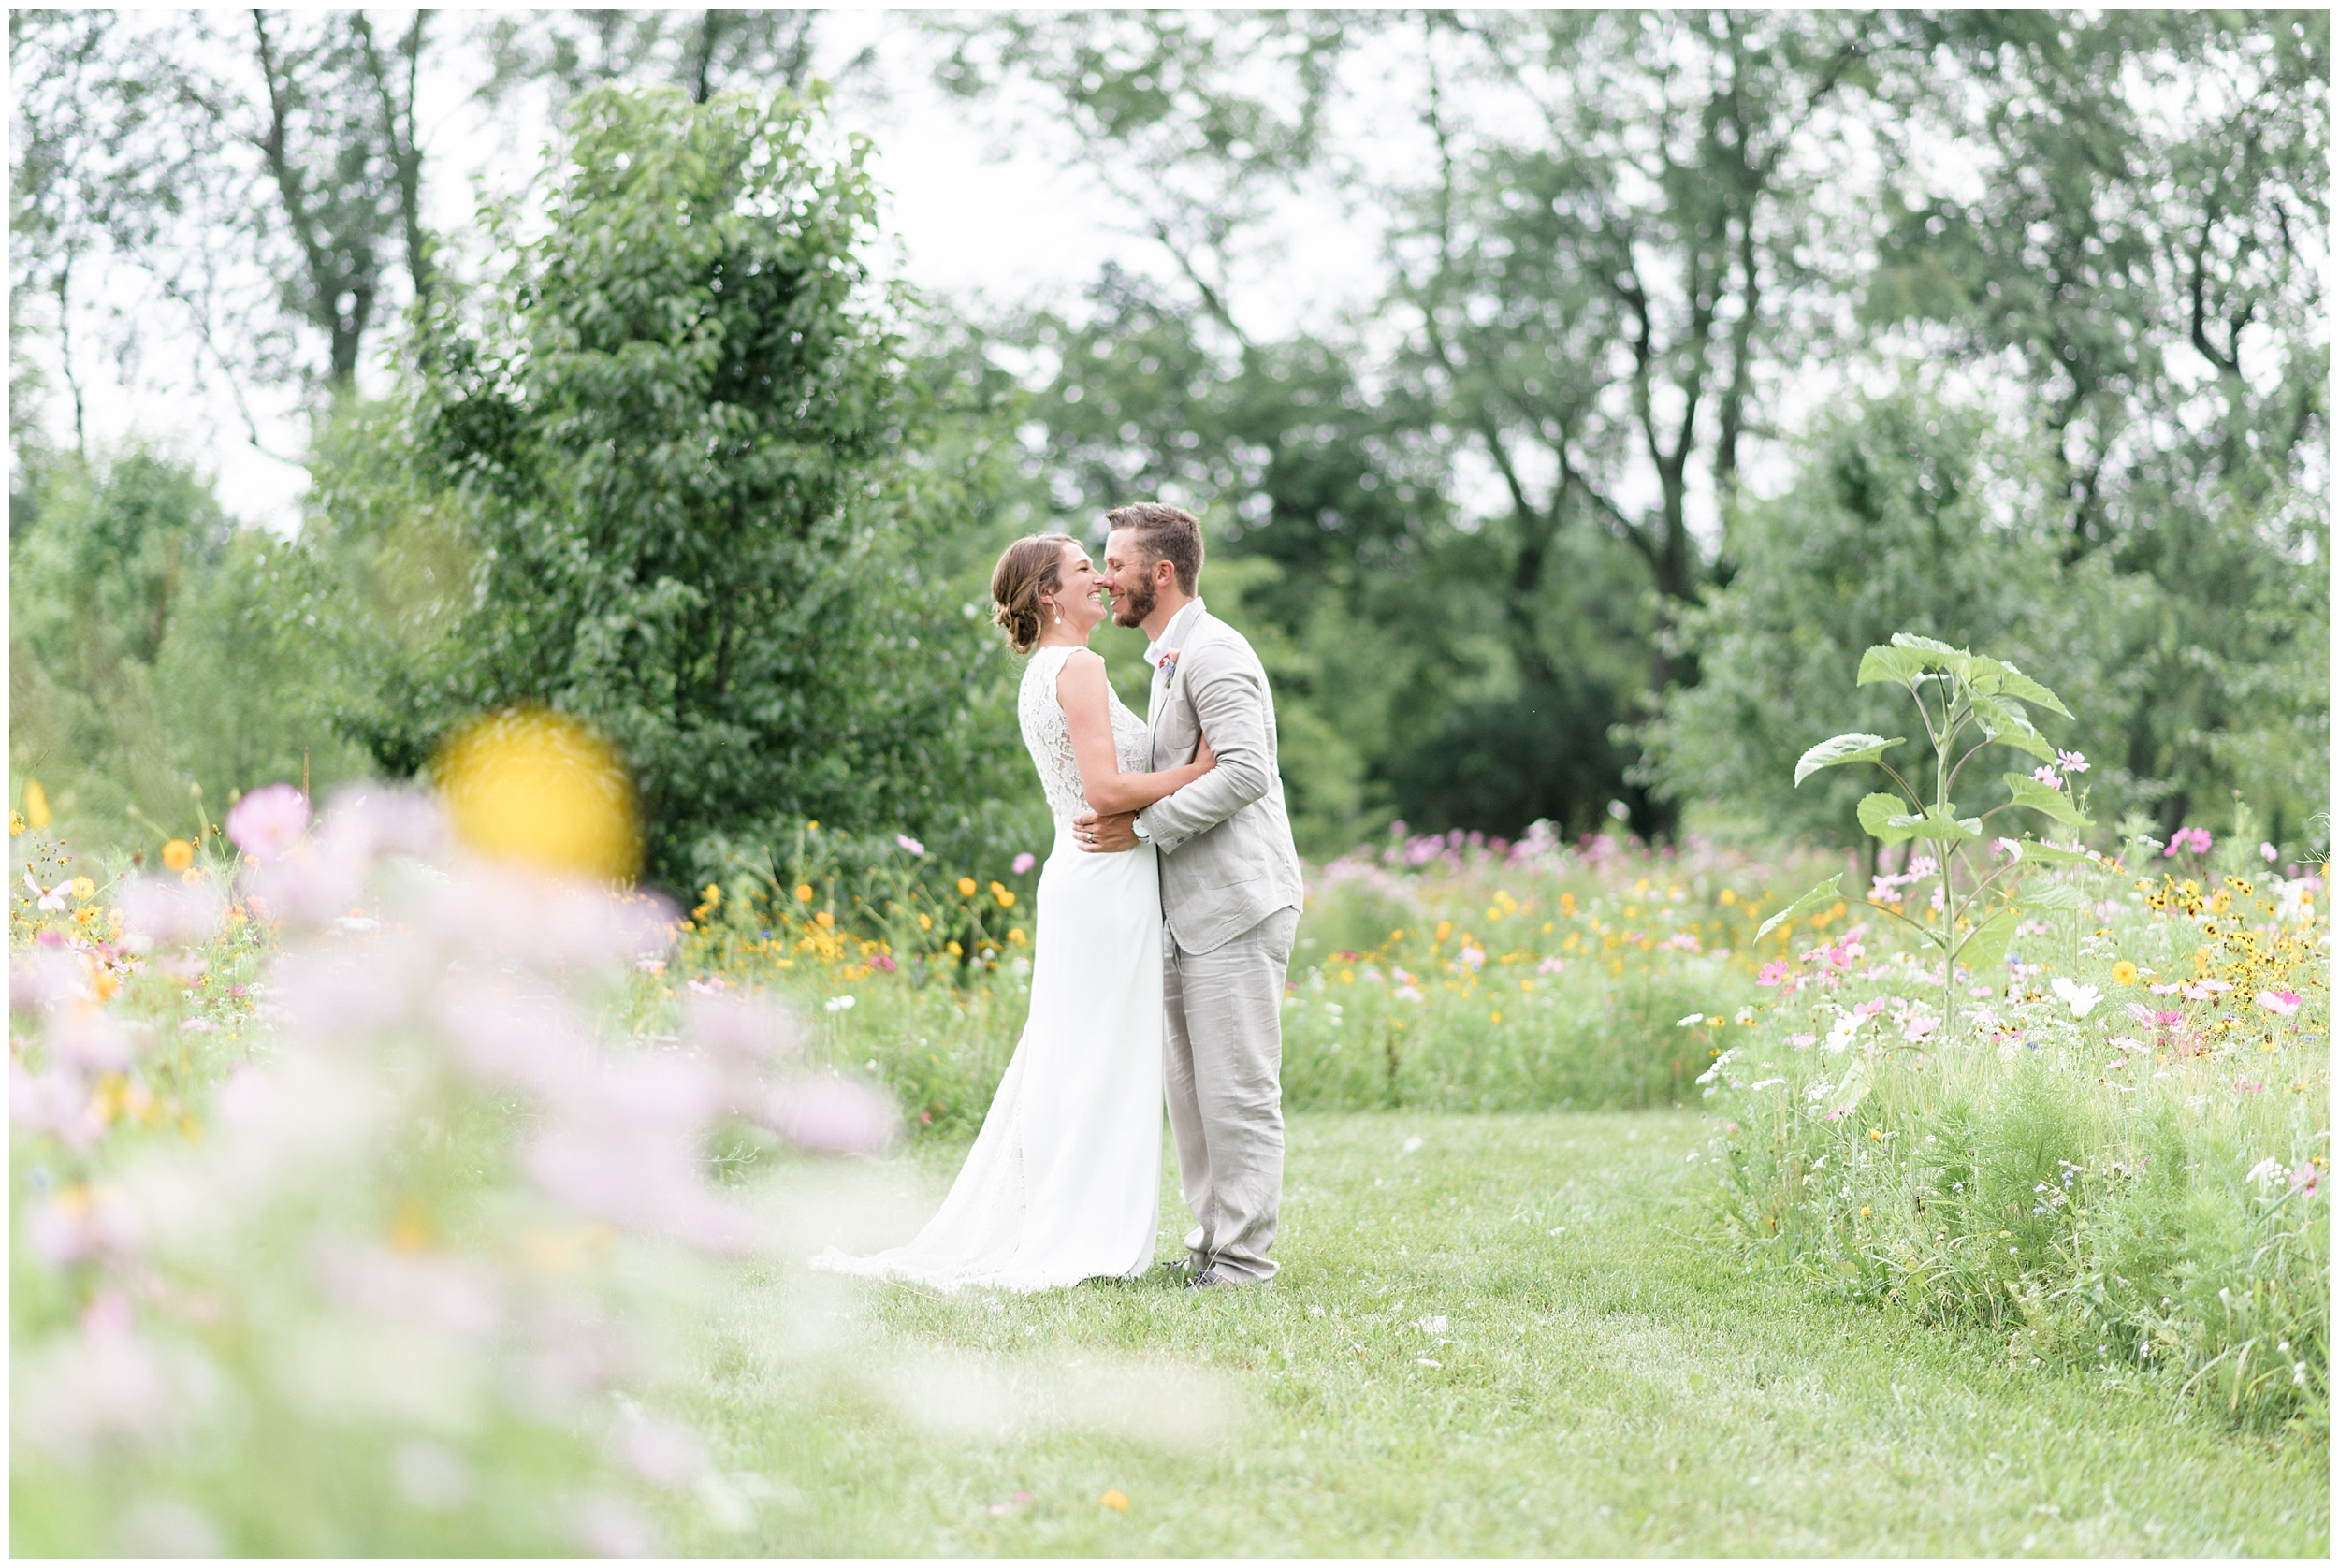 Whimsical-Ethereal-July-Kalamazoo-Wedding-Bright-Airy-Documentary-Milwaukee-Photographer_0068.jpg